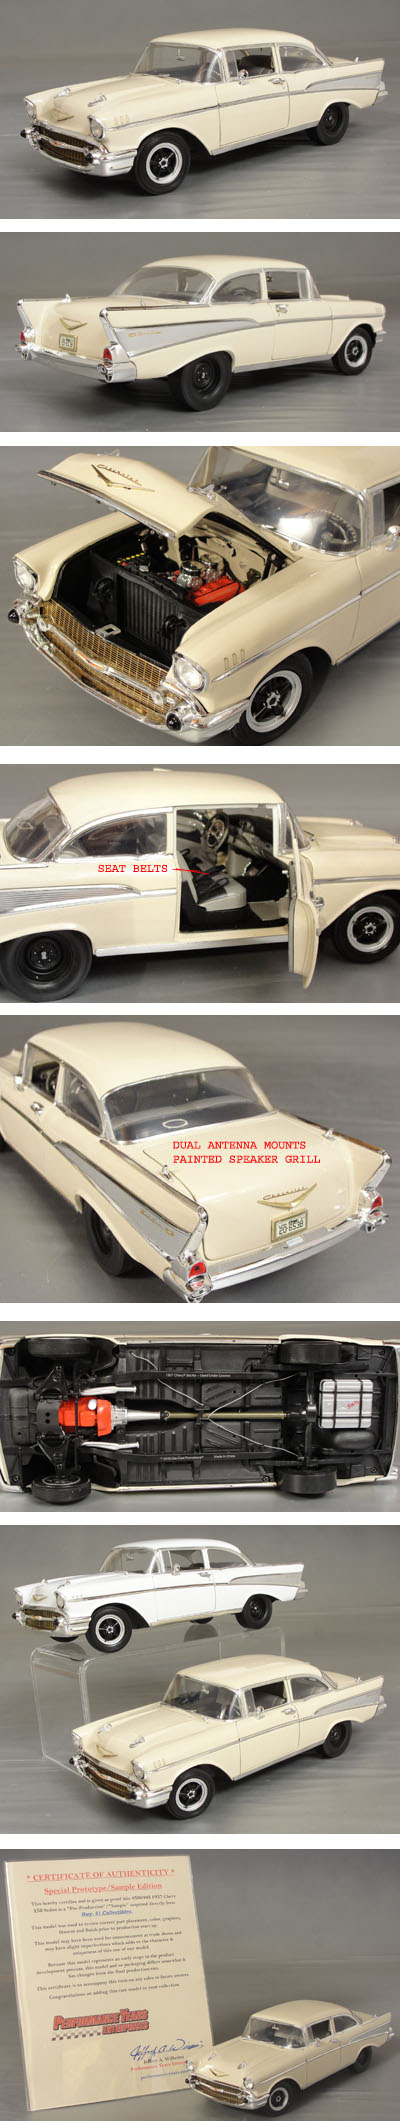 1957 Chevrolet Bel Air * Factory Sample Car *